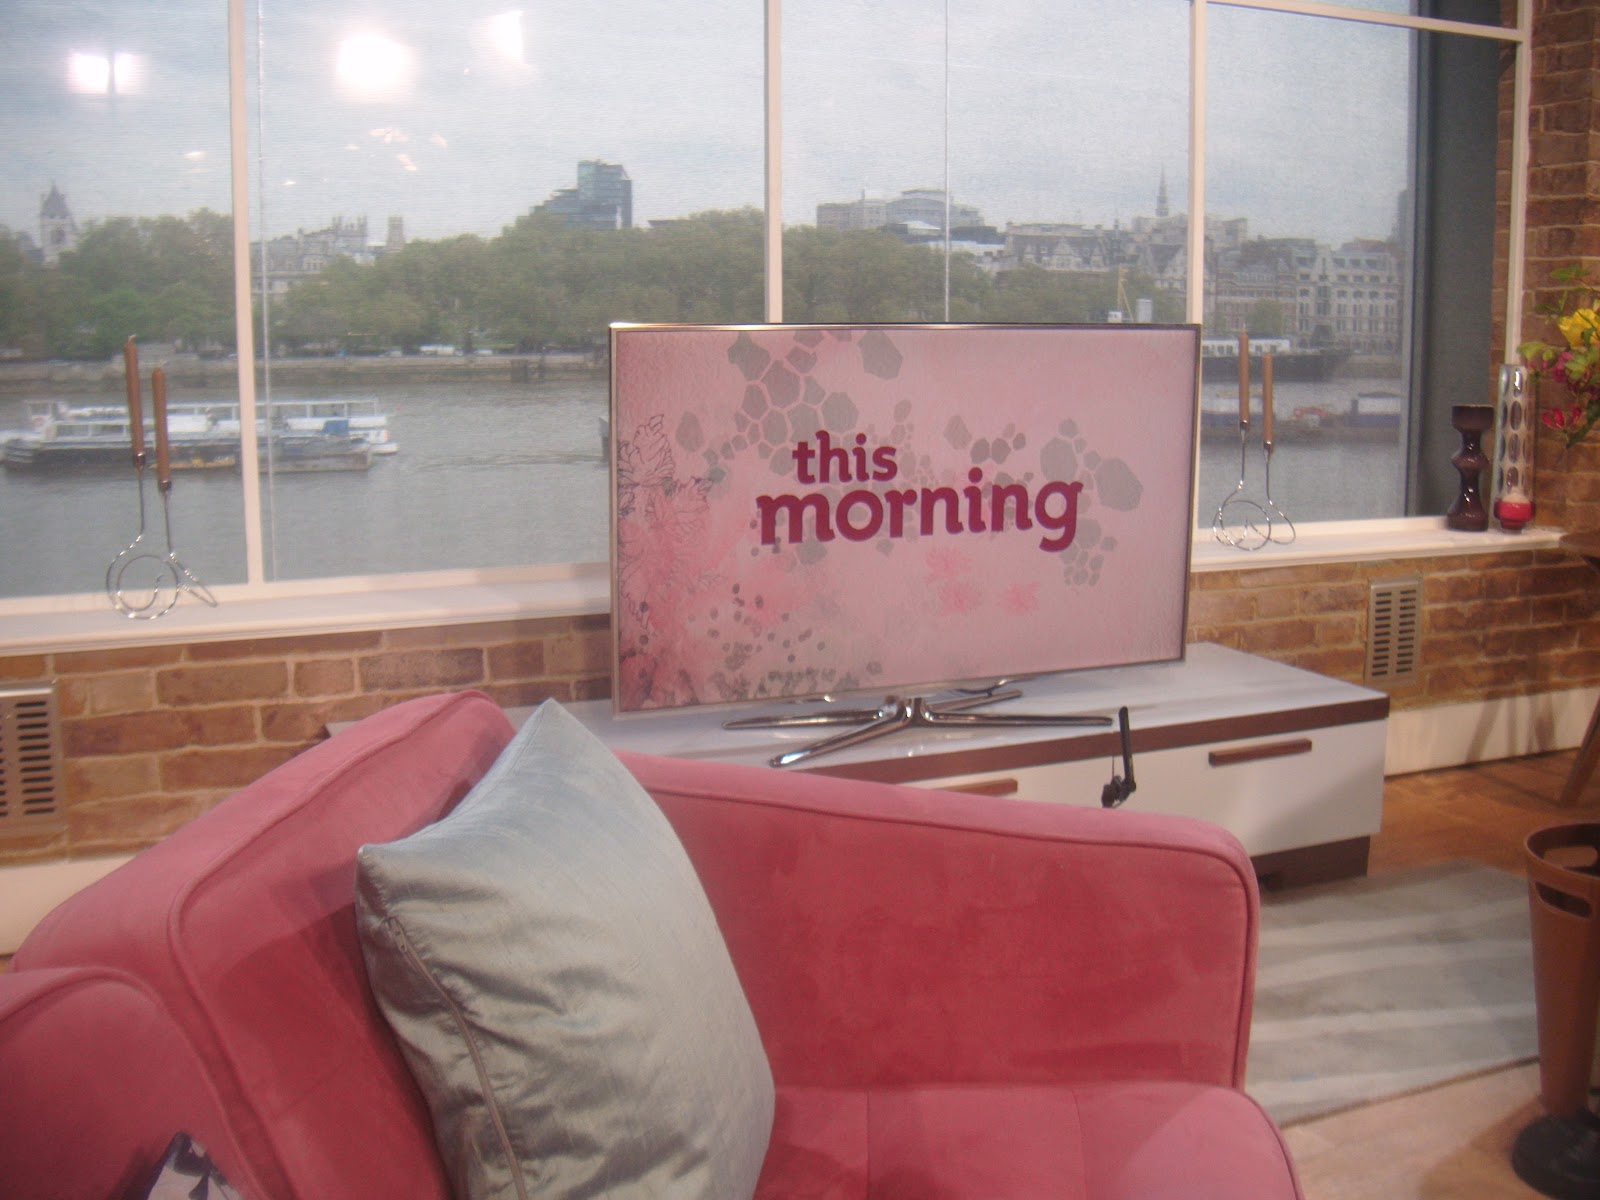 Backstage at ITV This Morning : Sex & London City